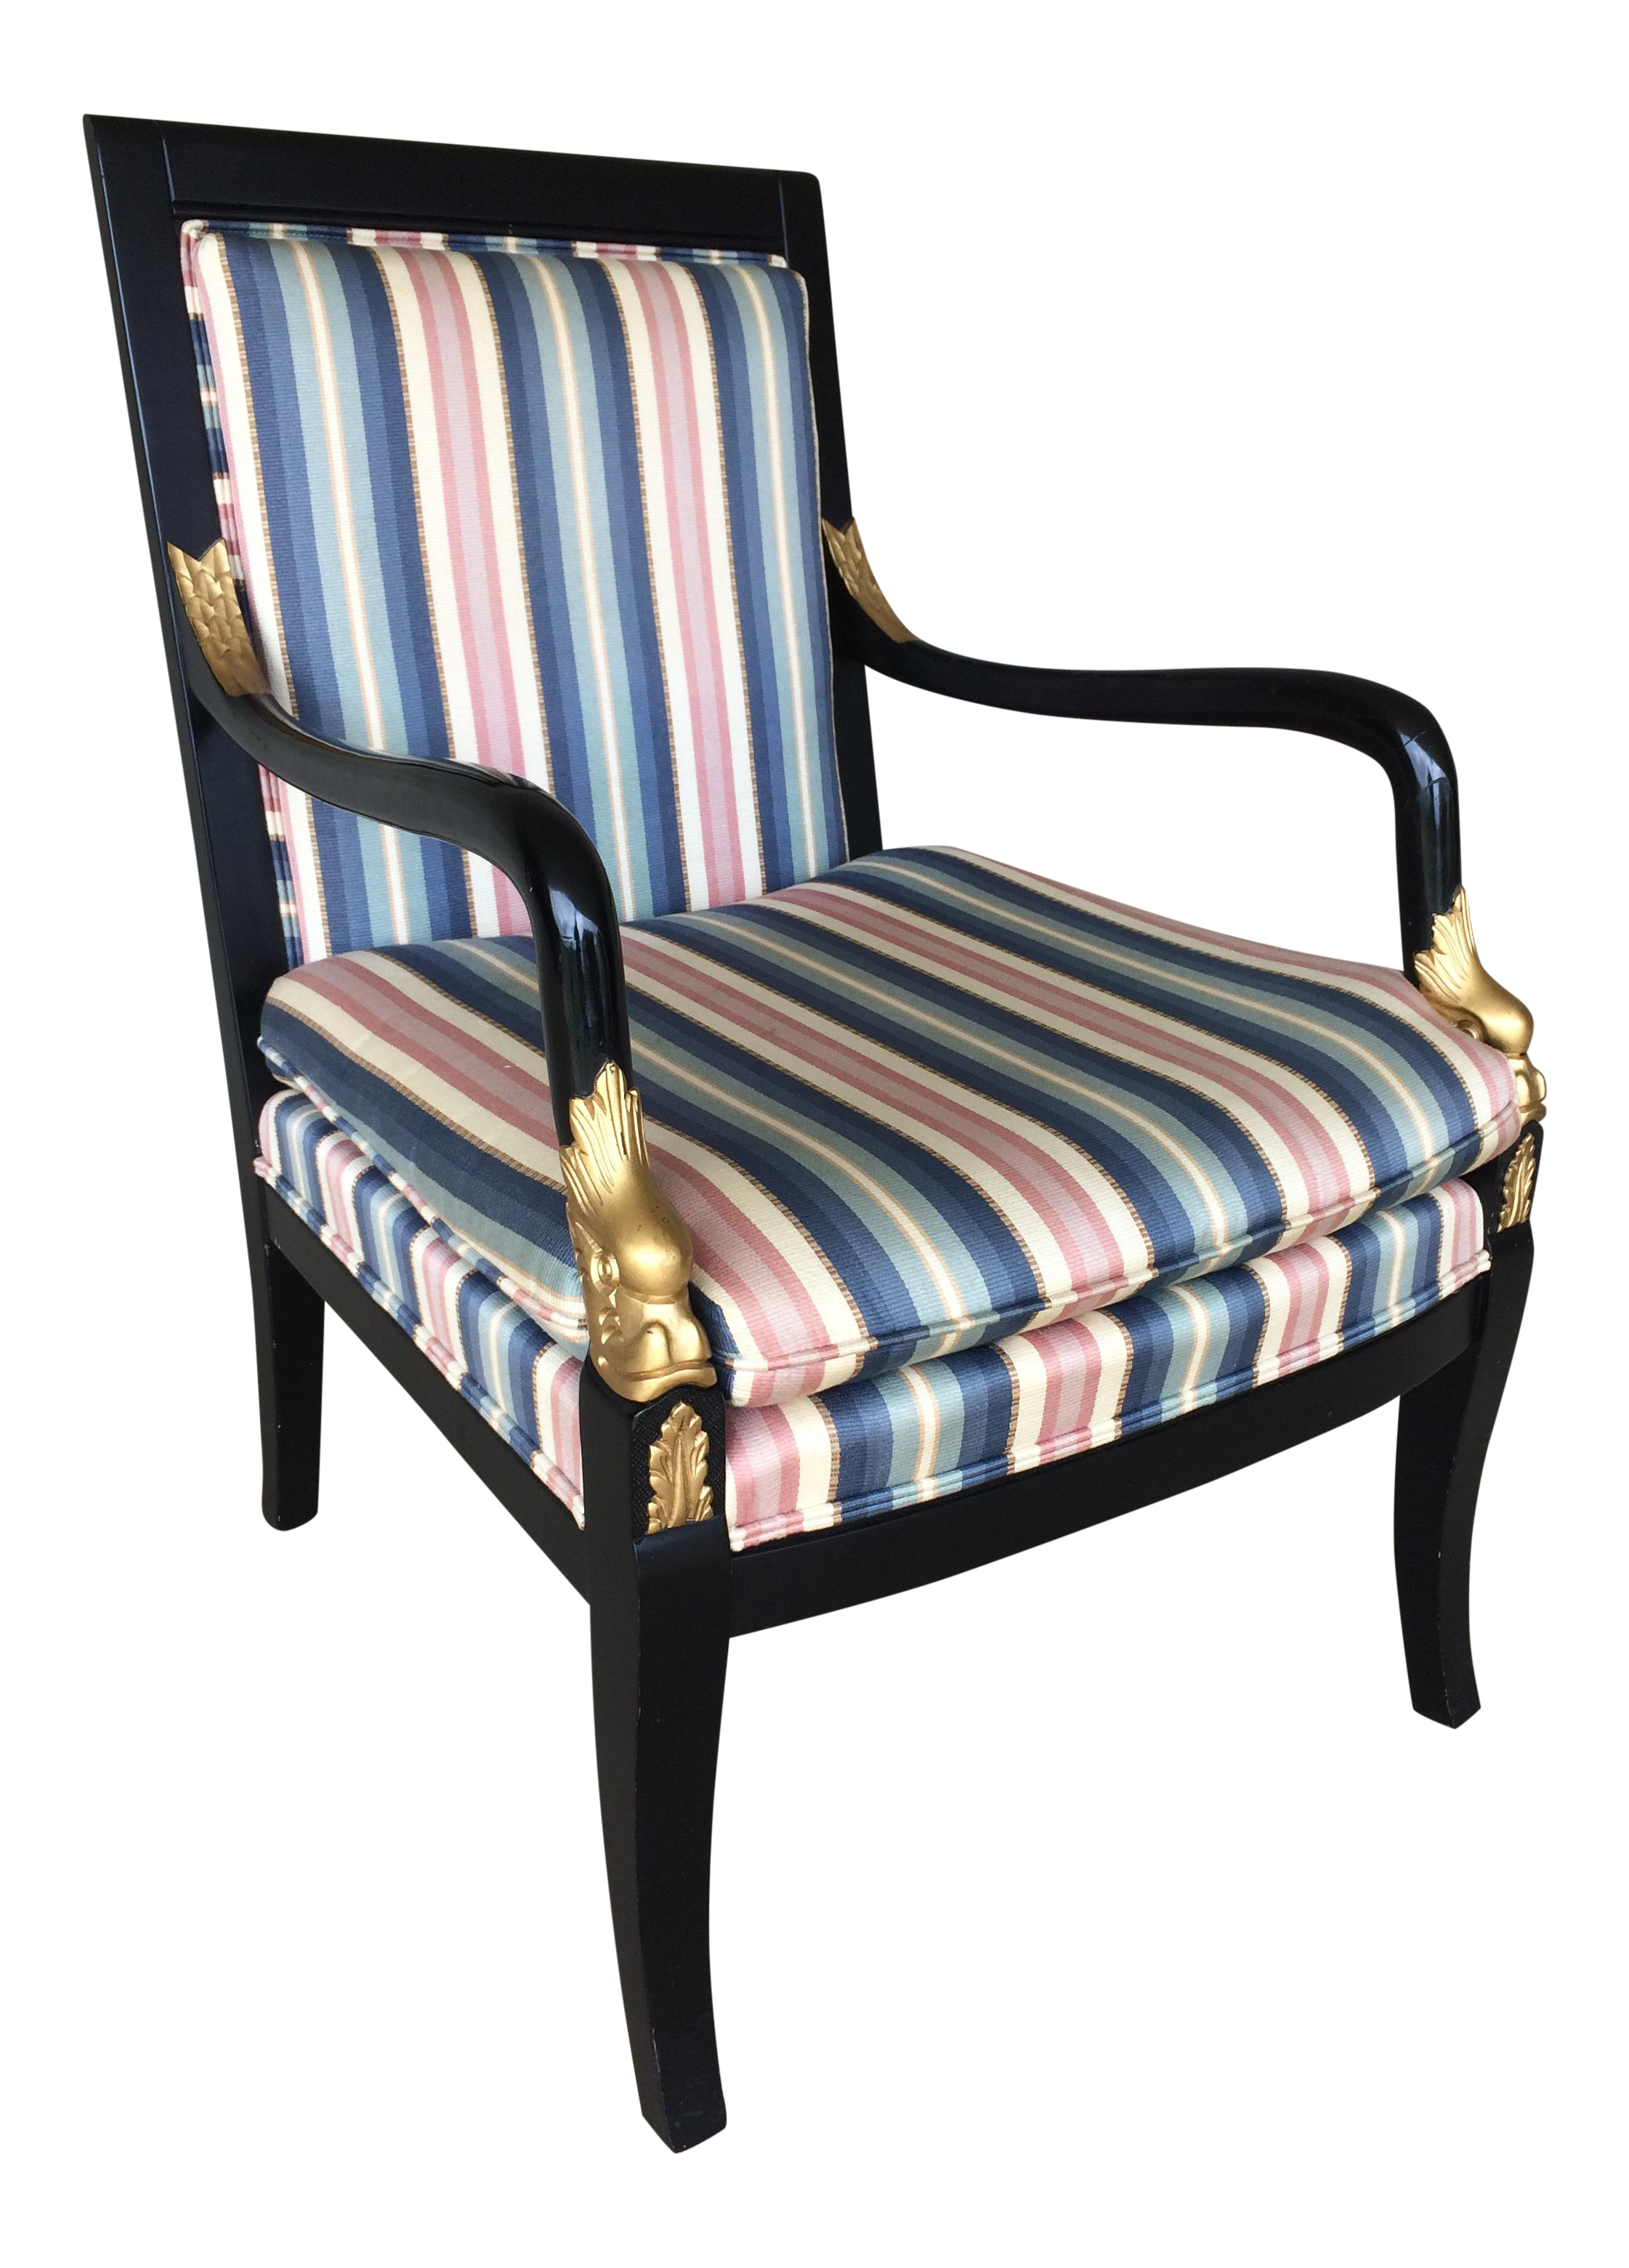 ethan allen dolphin federal blackgold trim upholstered arm chair image 1 of 10